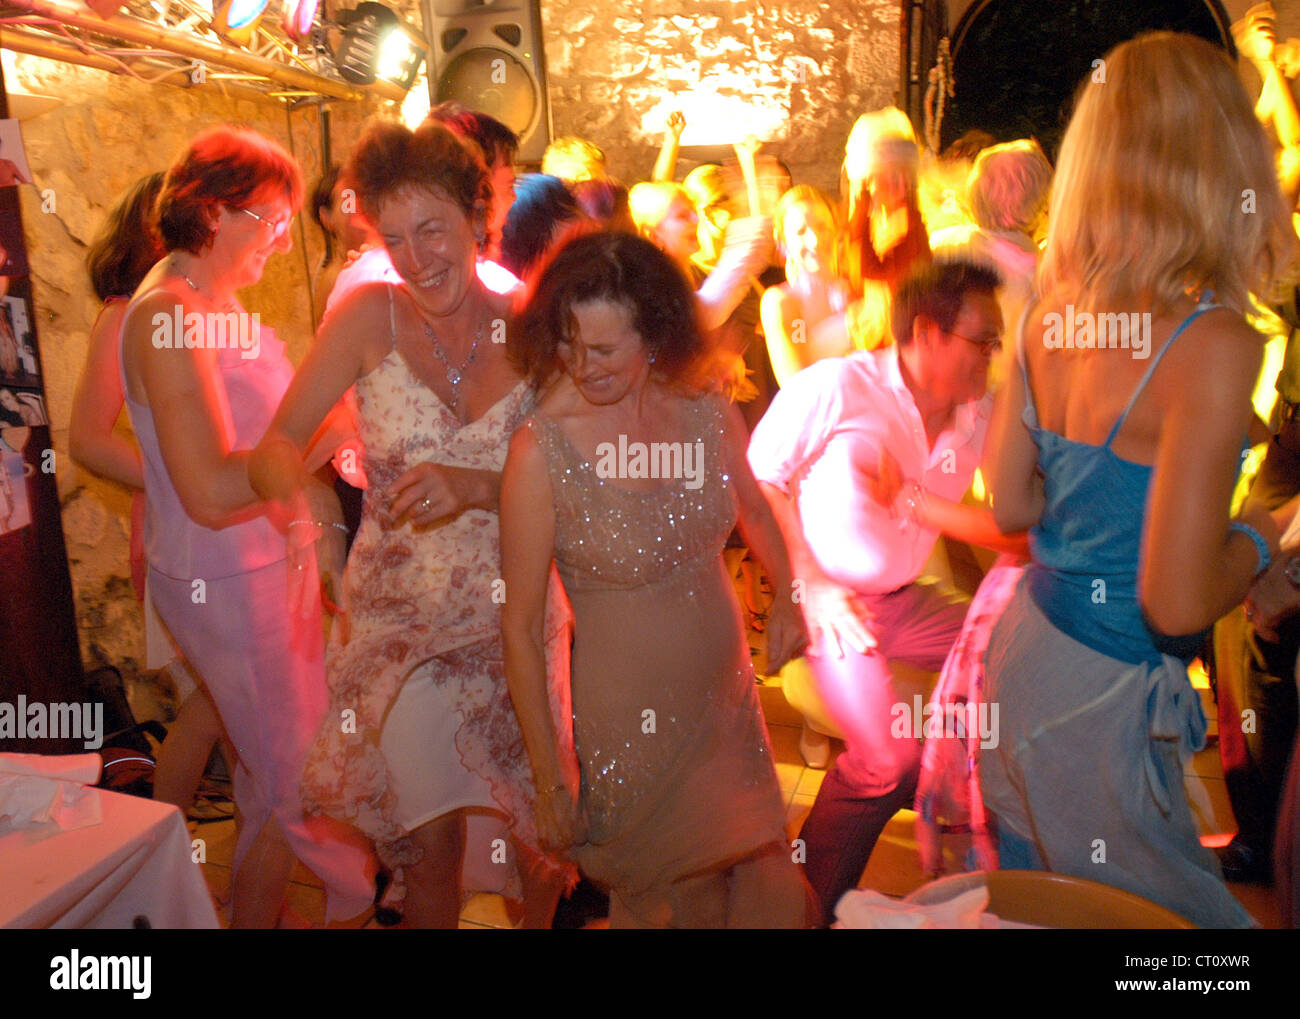 Guests at a wedding dance omitted - Stock Image